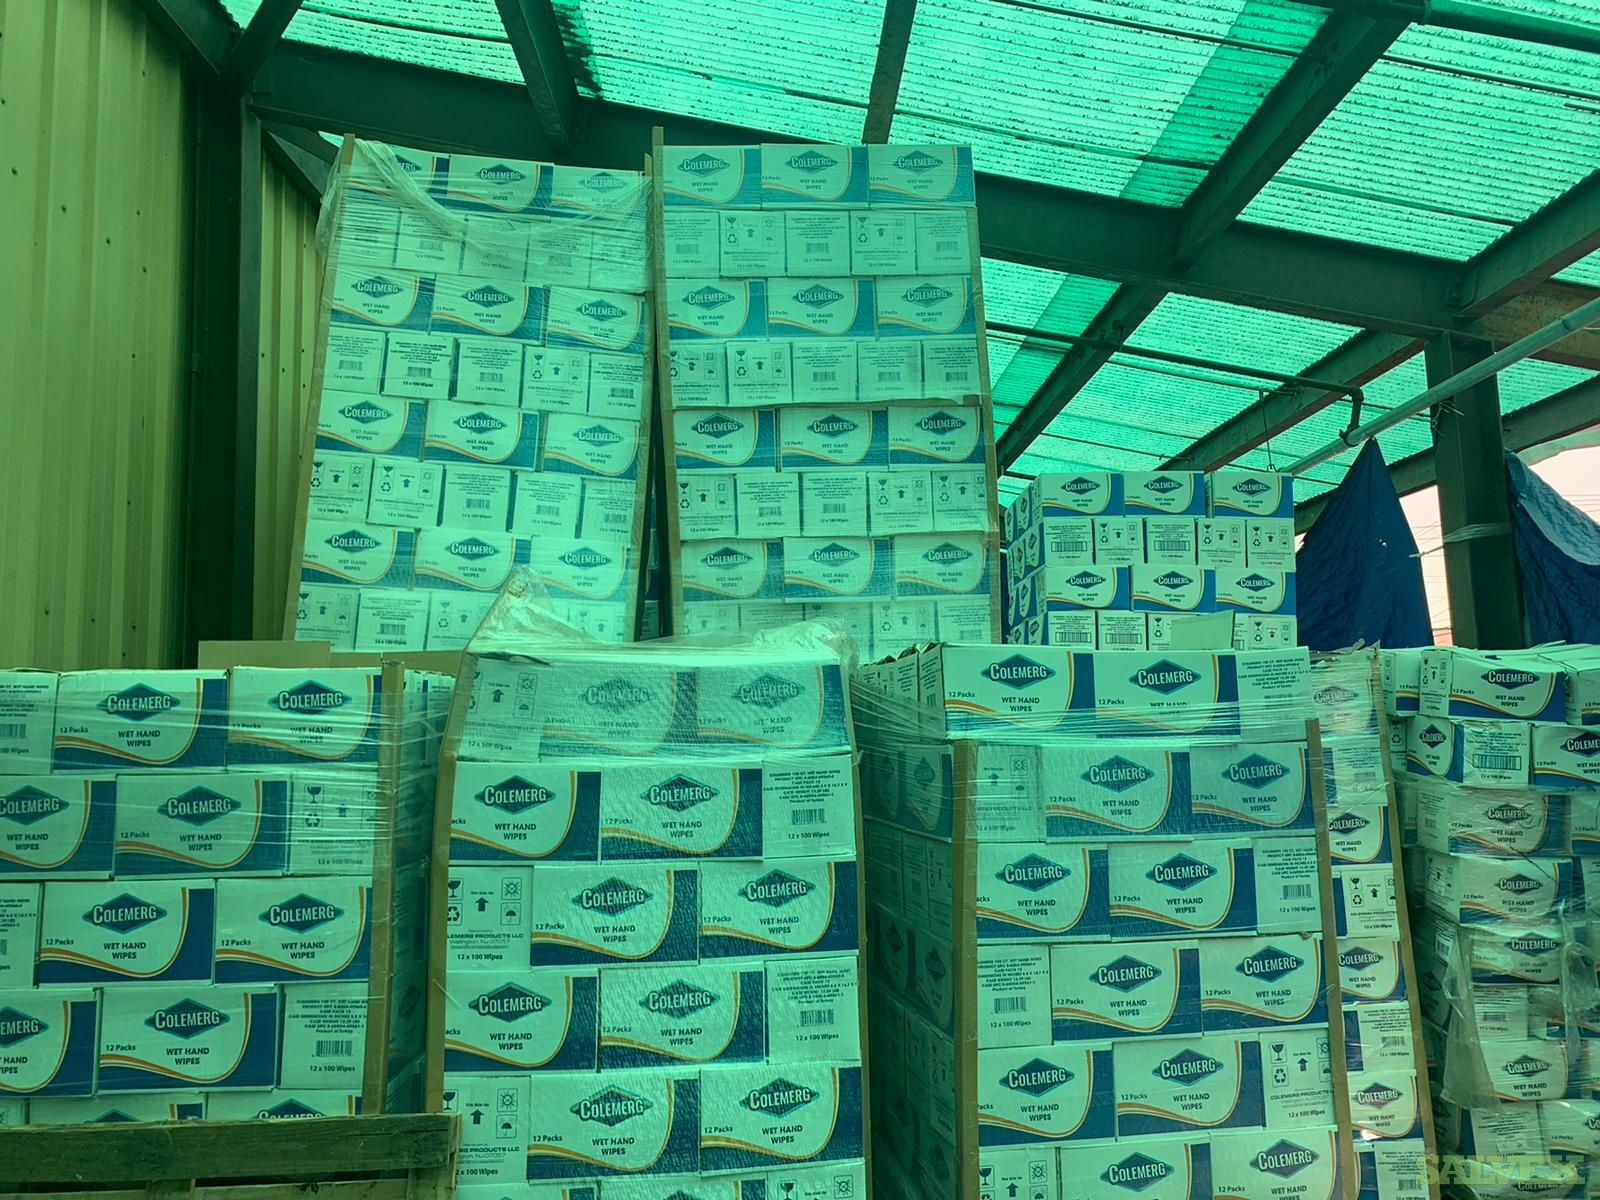 Colemerg Antibacterial Hand Sanitizing Wipes (104 Boxes per Pallet / 28 Pallets) in NJ L2